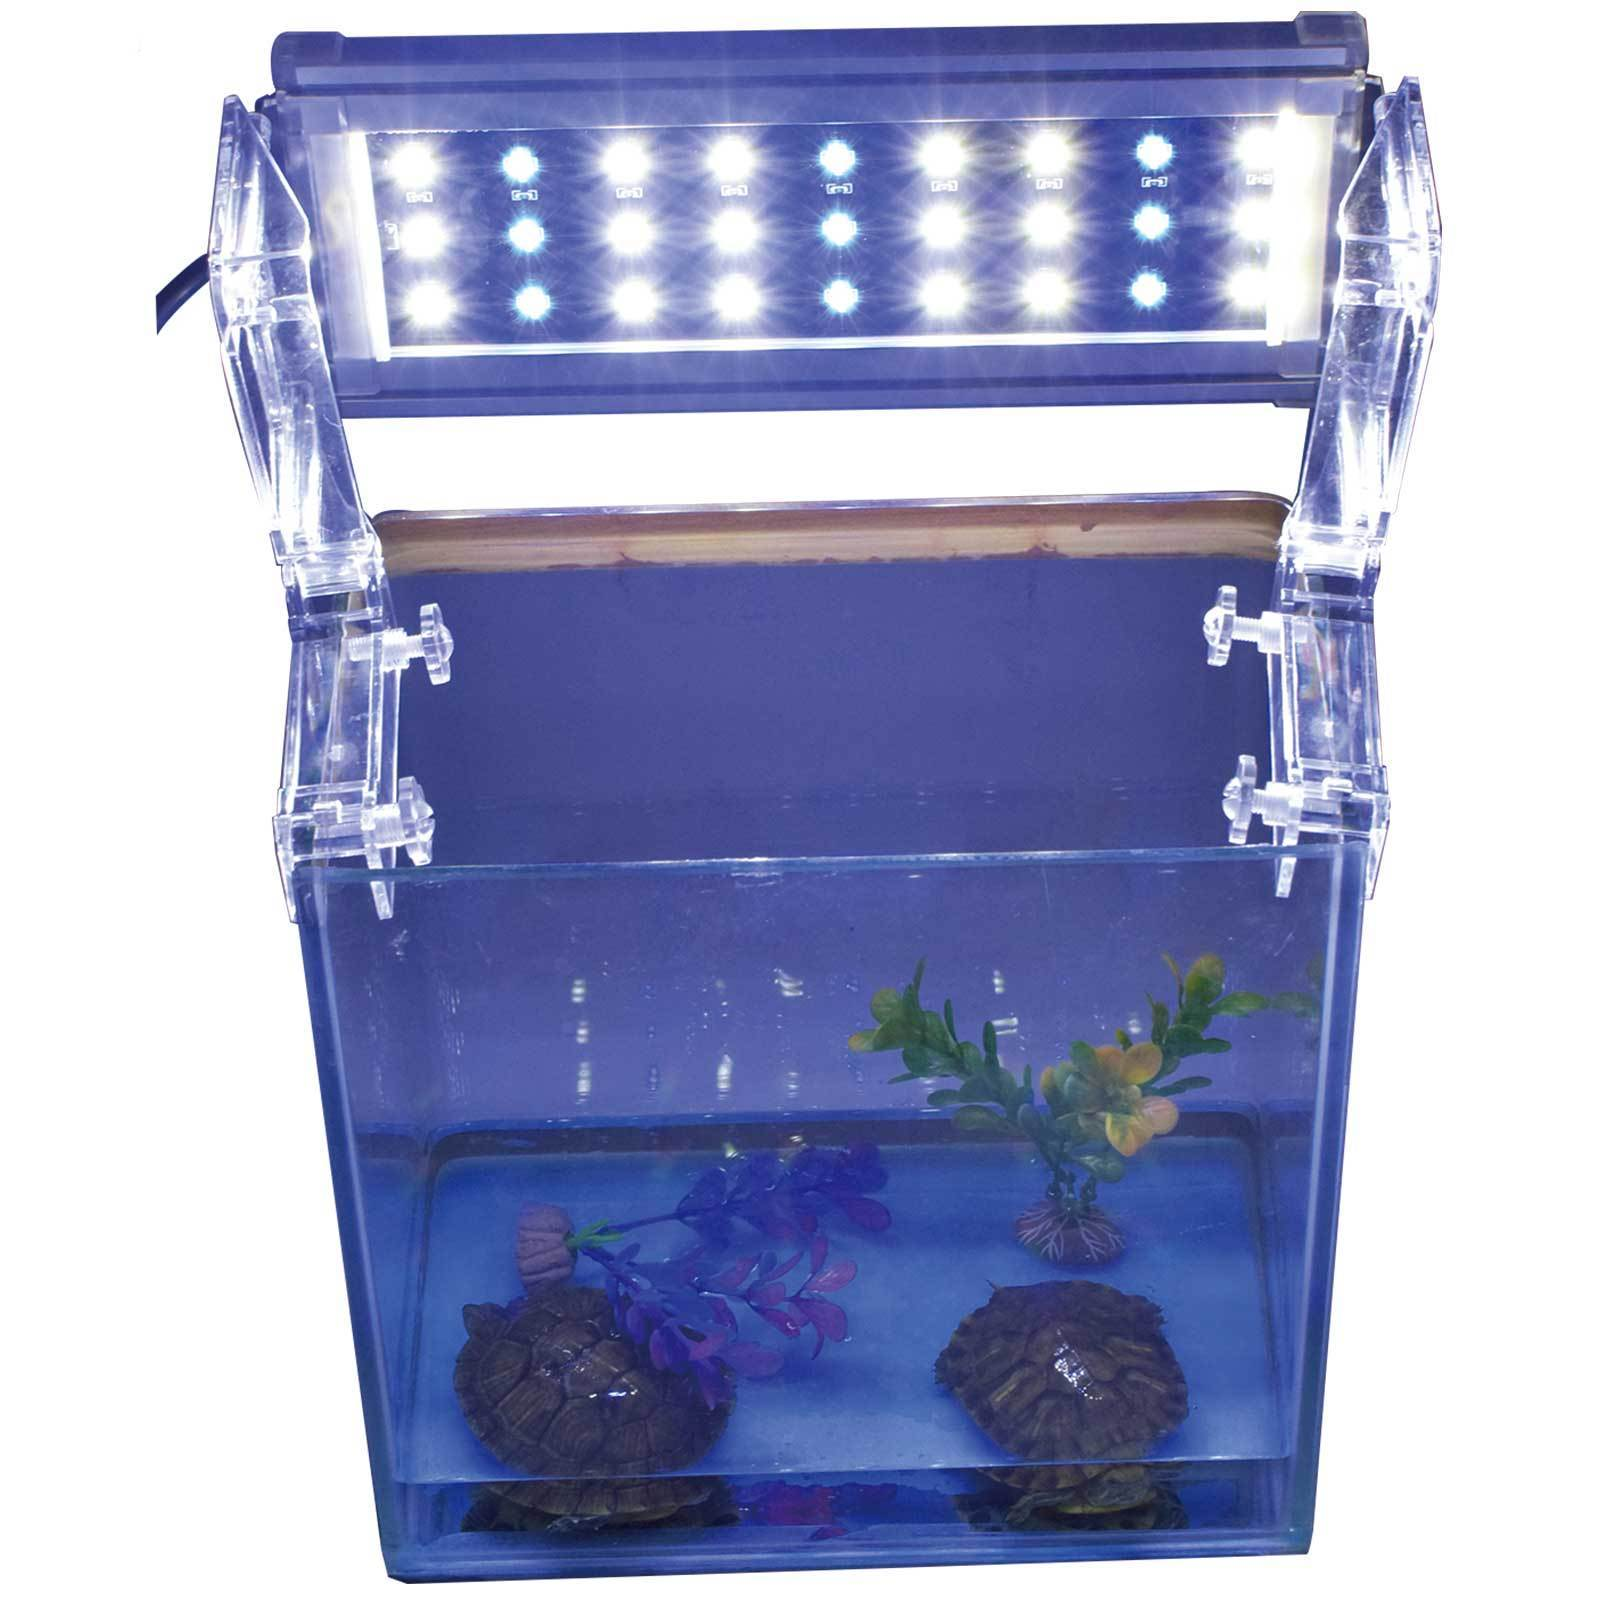 blau weiss meerwasser s wasser aquarium tank led. Black Bedroom Furniture Sets. Home Design Ideas